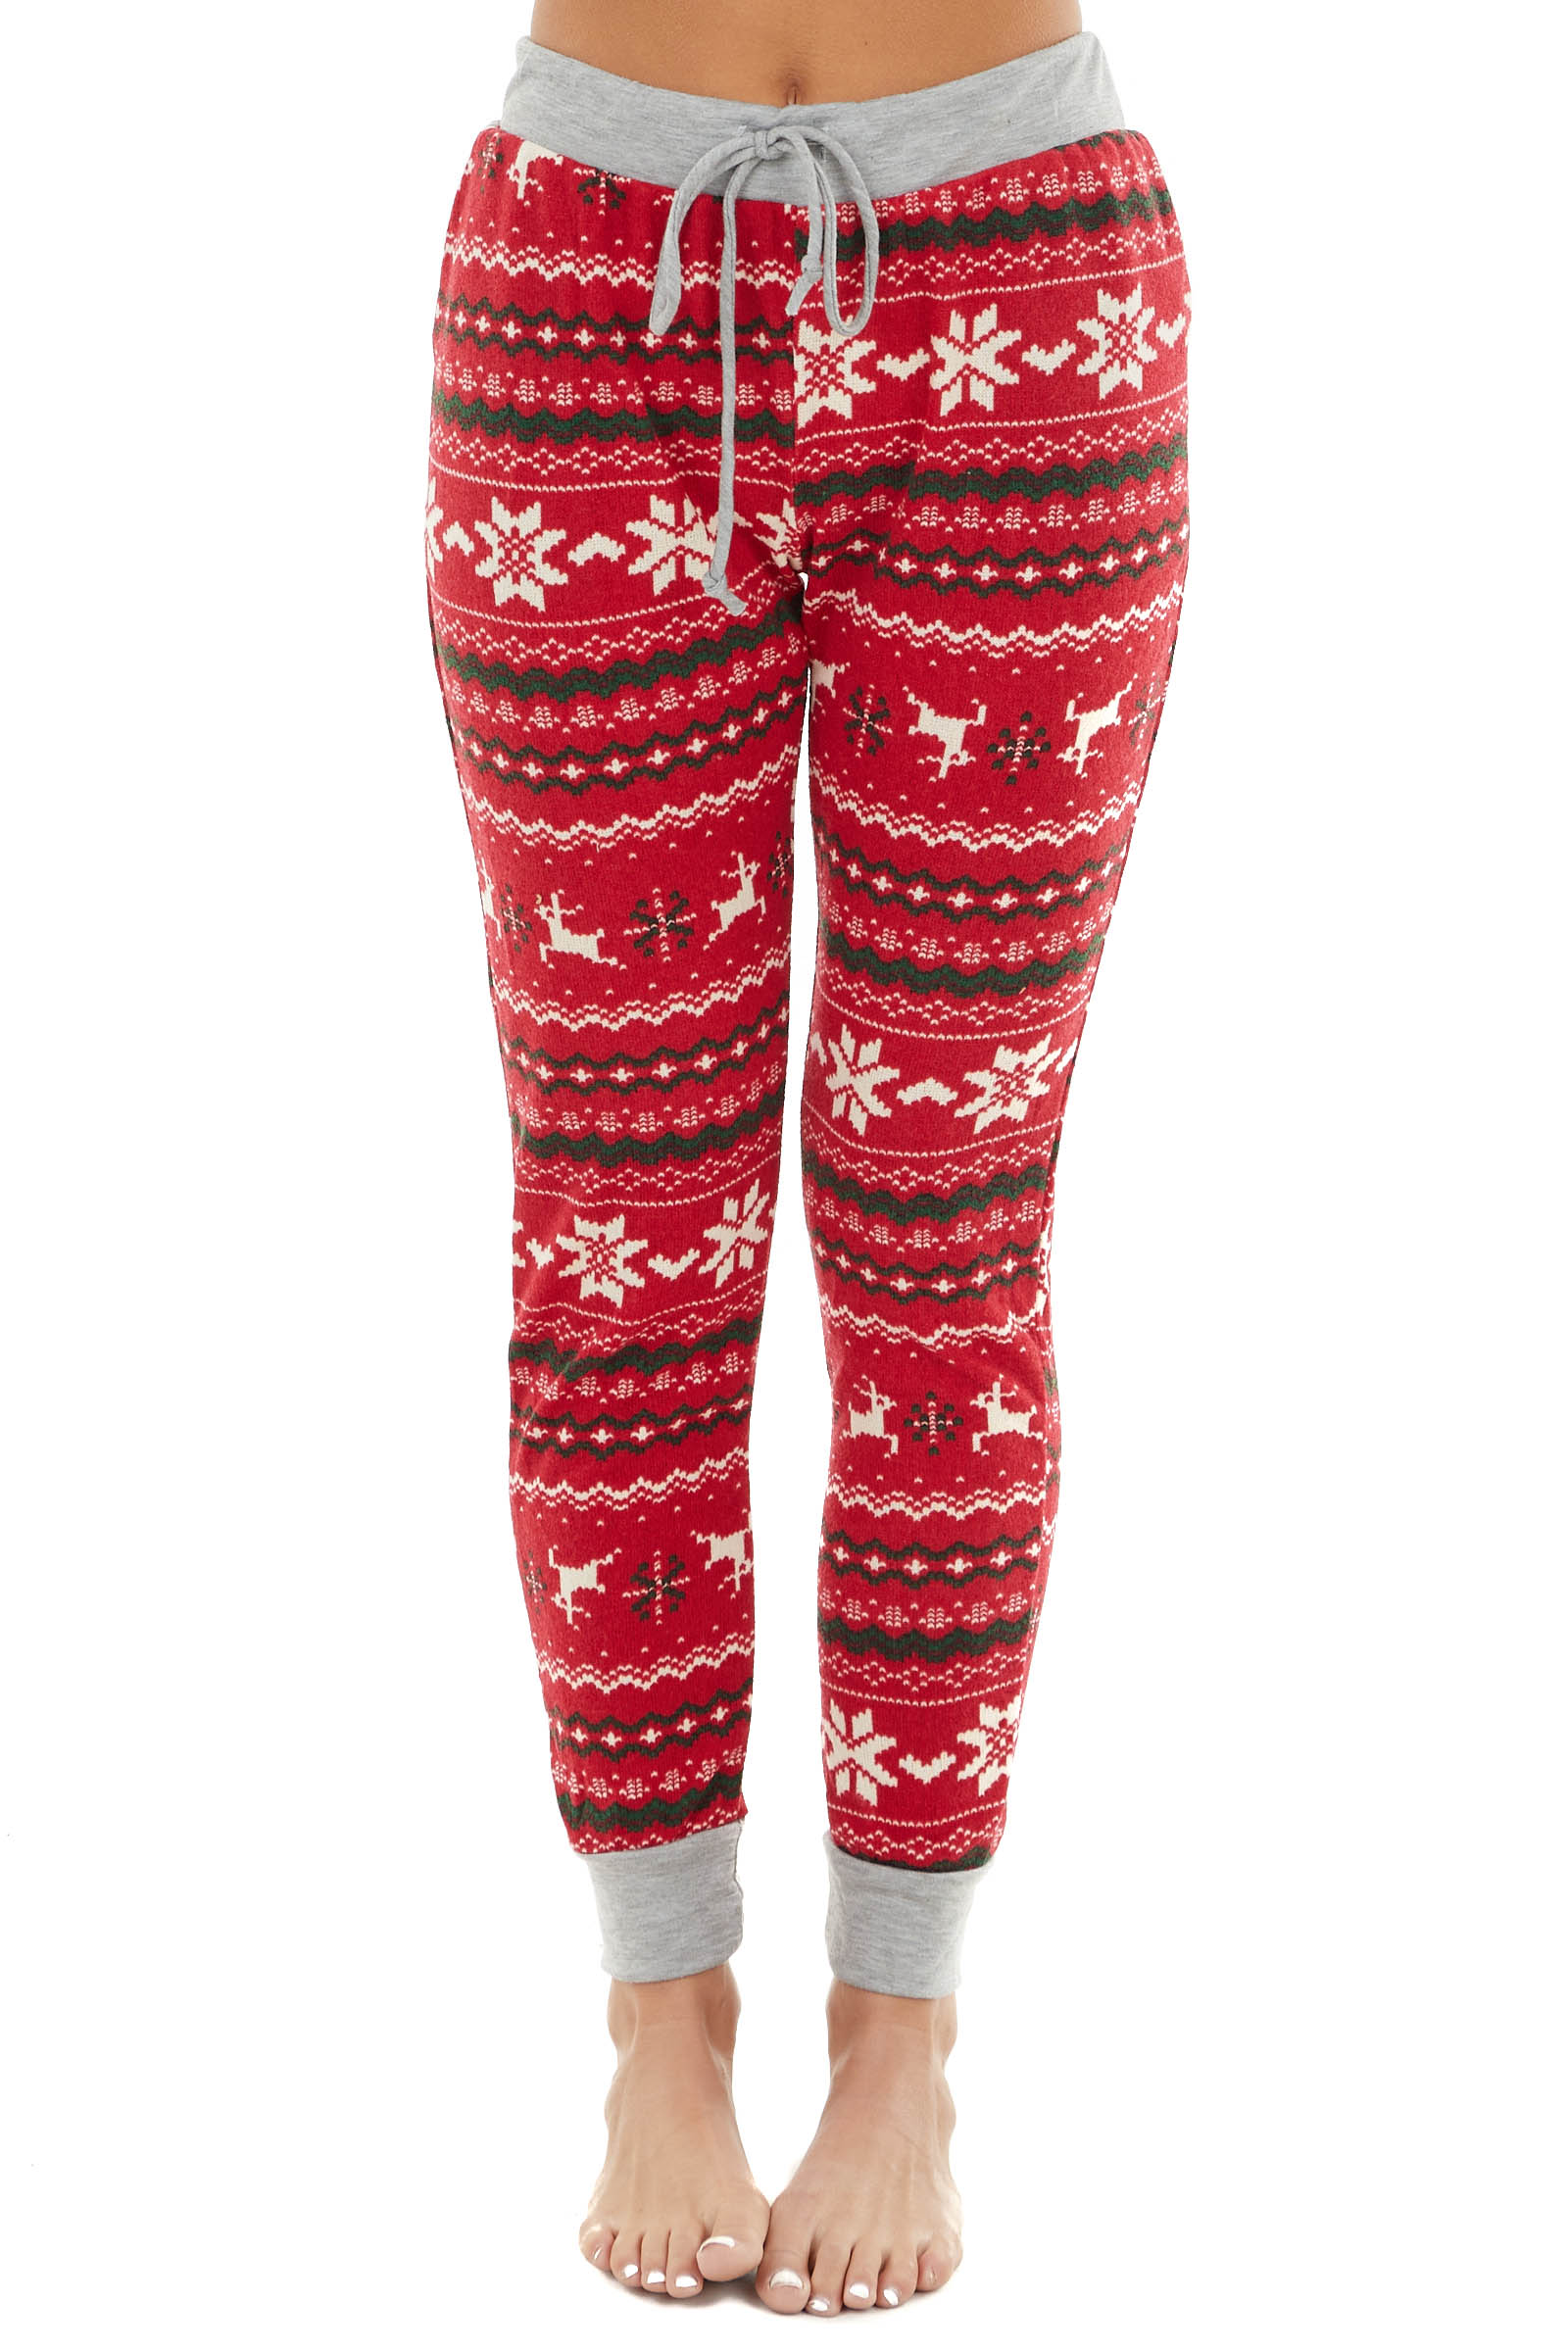 Candy Apple Red and Heather Grey Lightweight Holiday Joggers